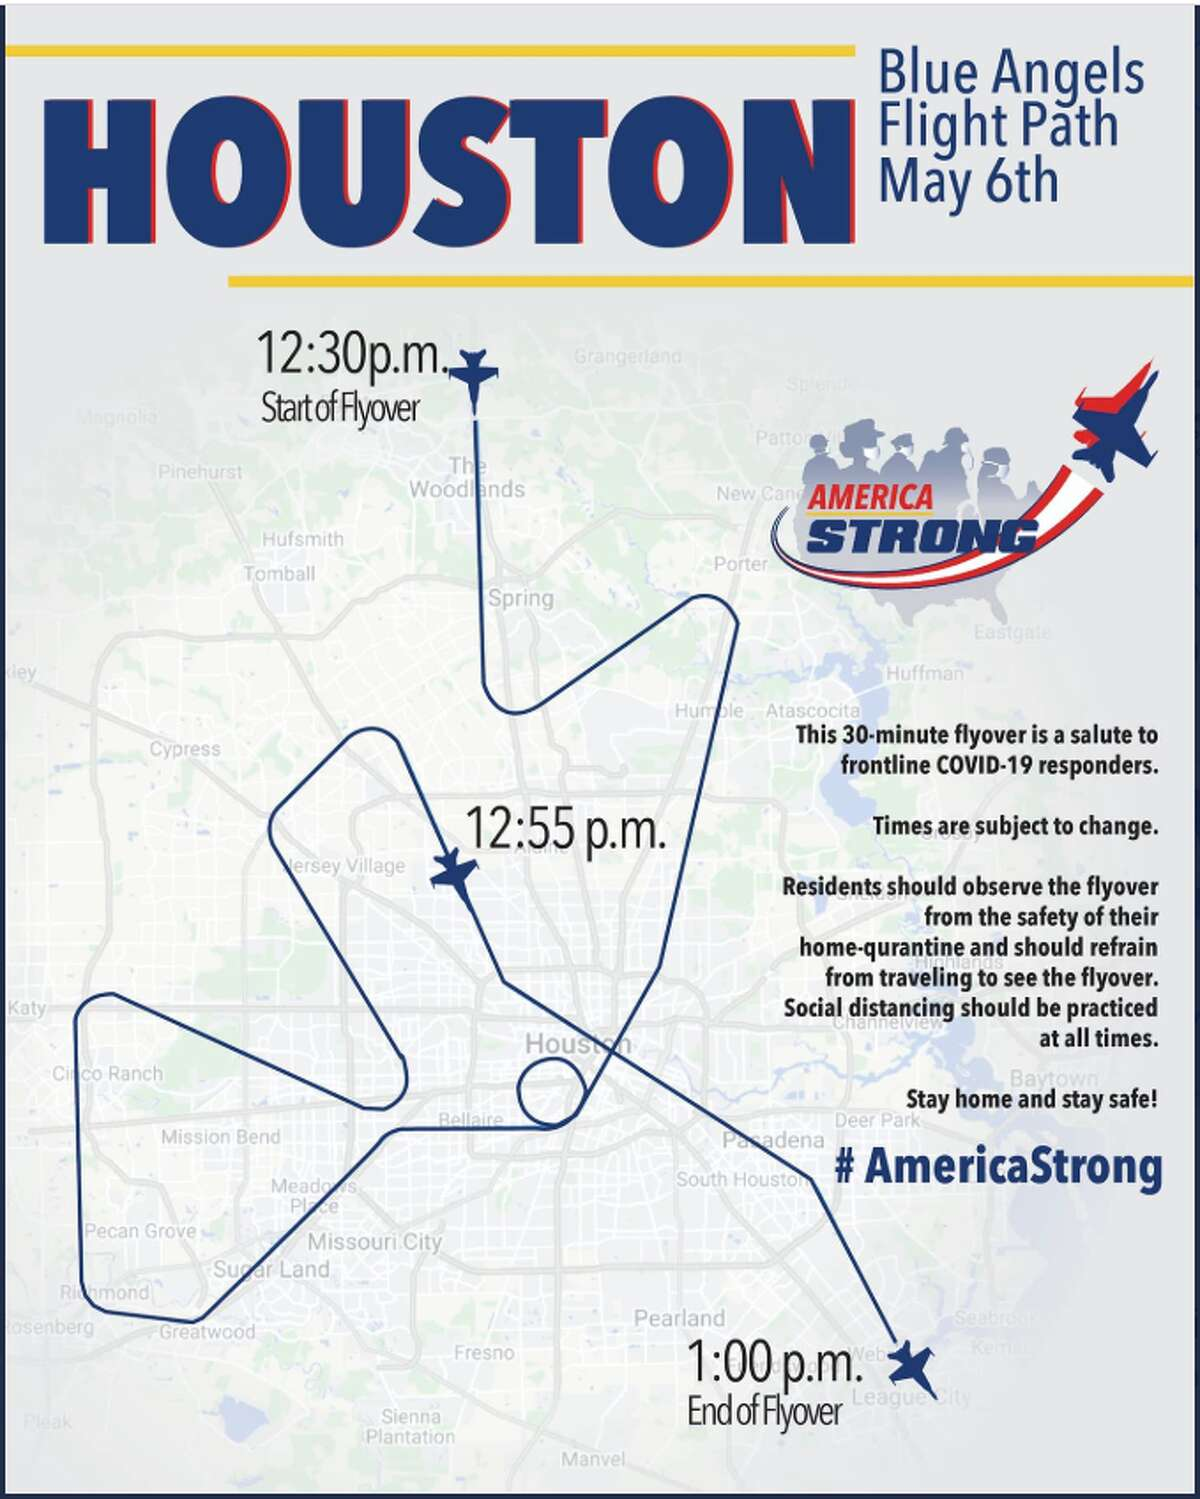 Your #BlueAngels are heading your way Houston! Check out the overhead times and route on the graph they shared.